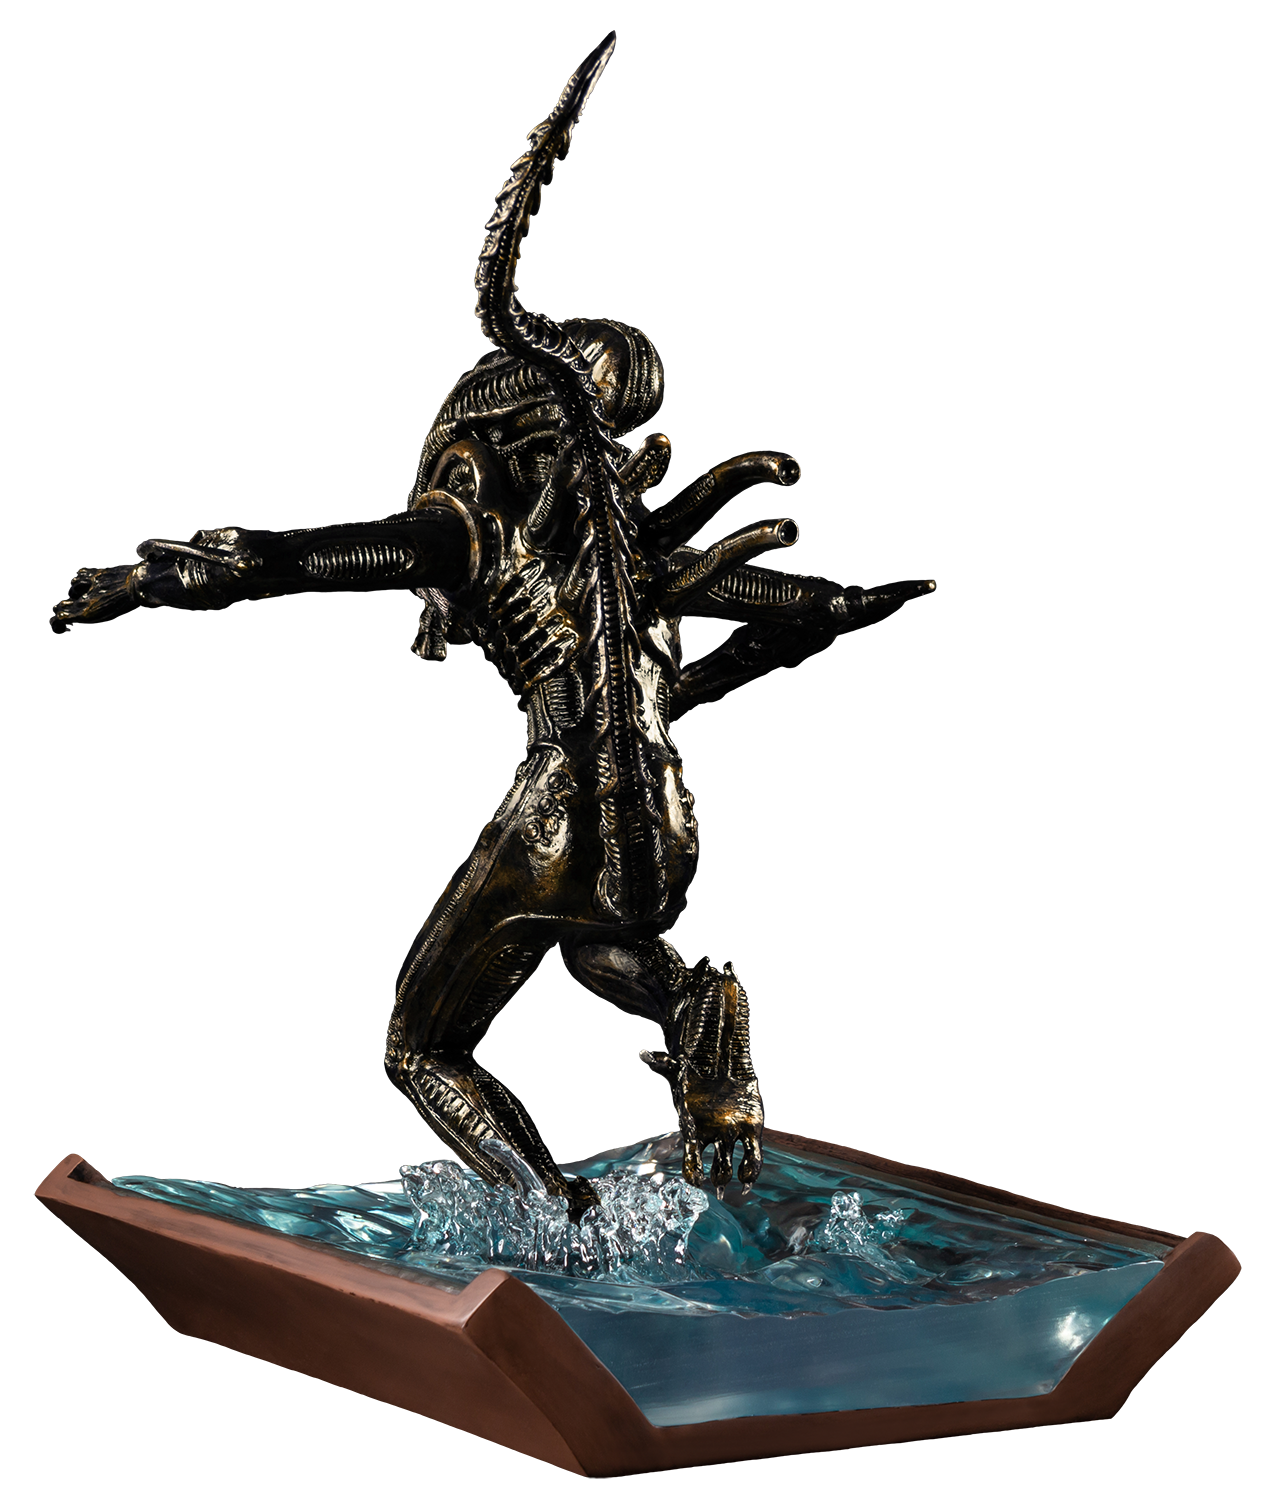 IKO1605-Alien-in-Water-Statue-New-Paint-5-130.png